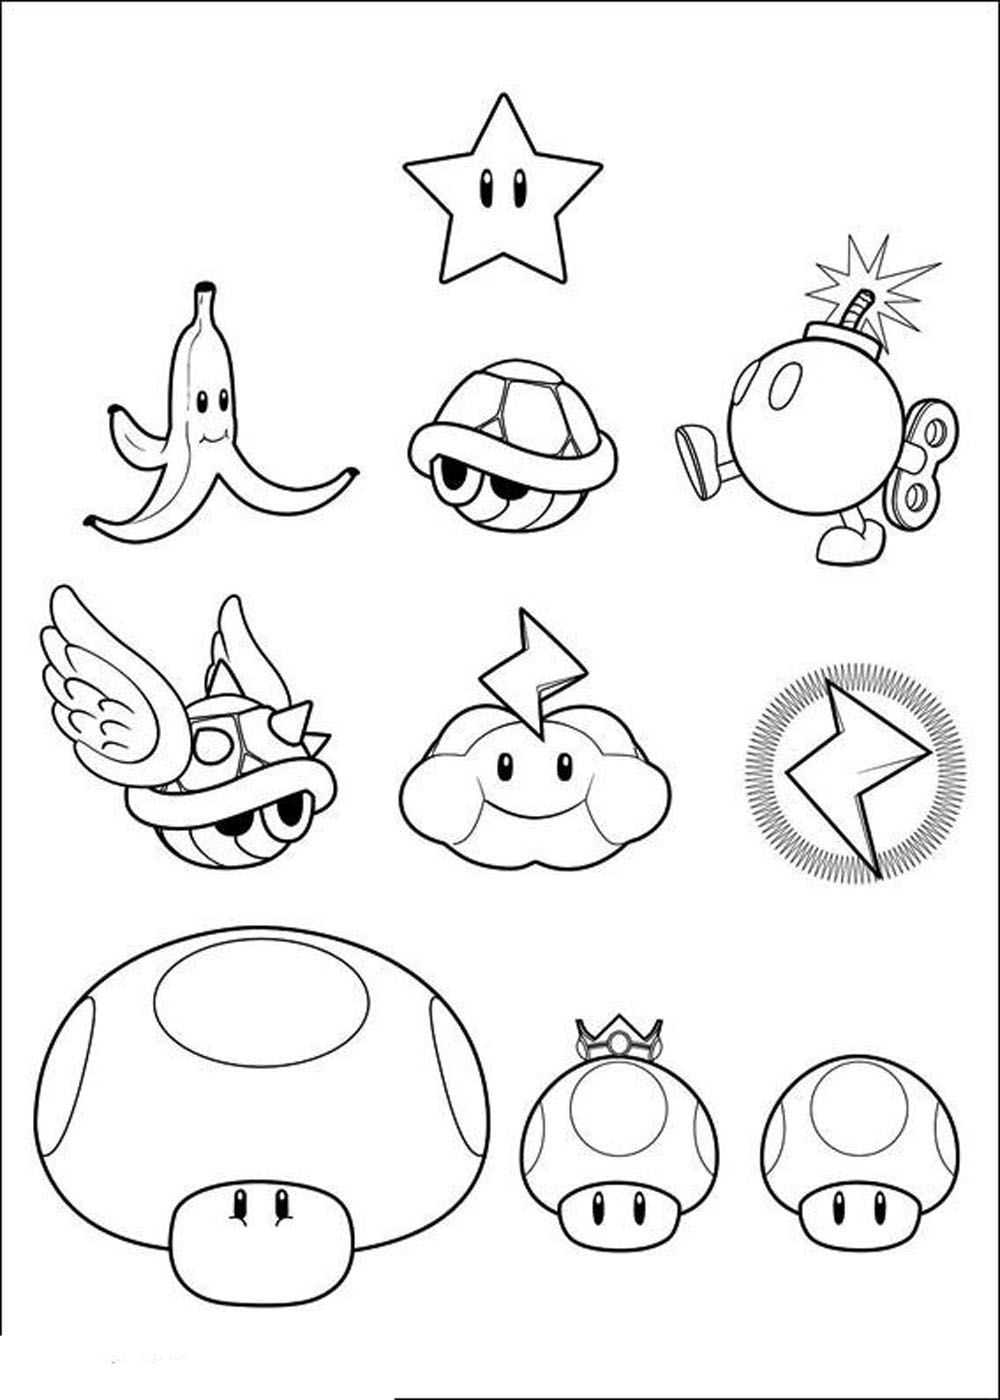 printable pictures of mario characters super mario bros characters coloring pages coloring home mario of pictures characters printable